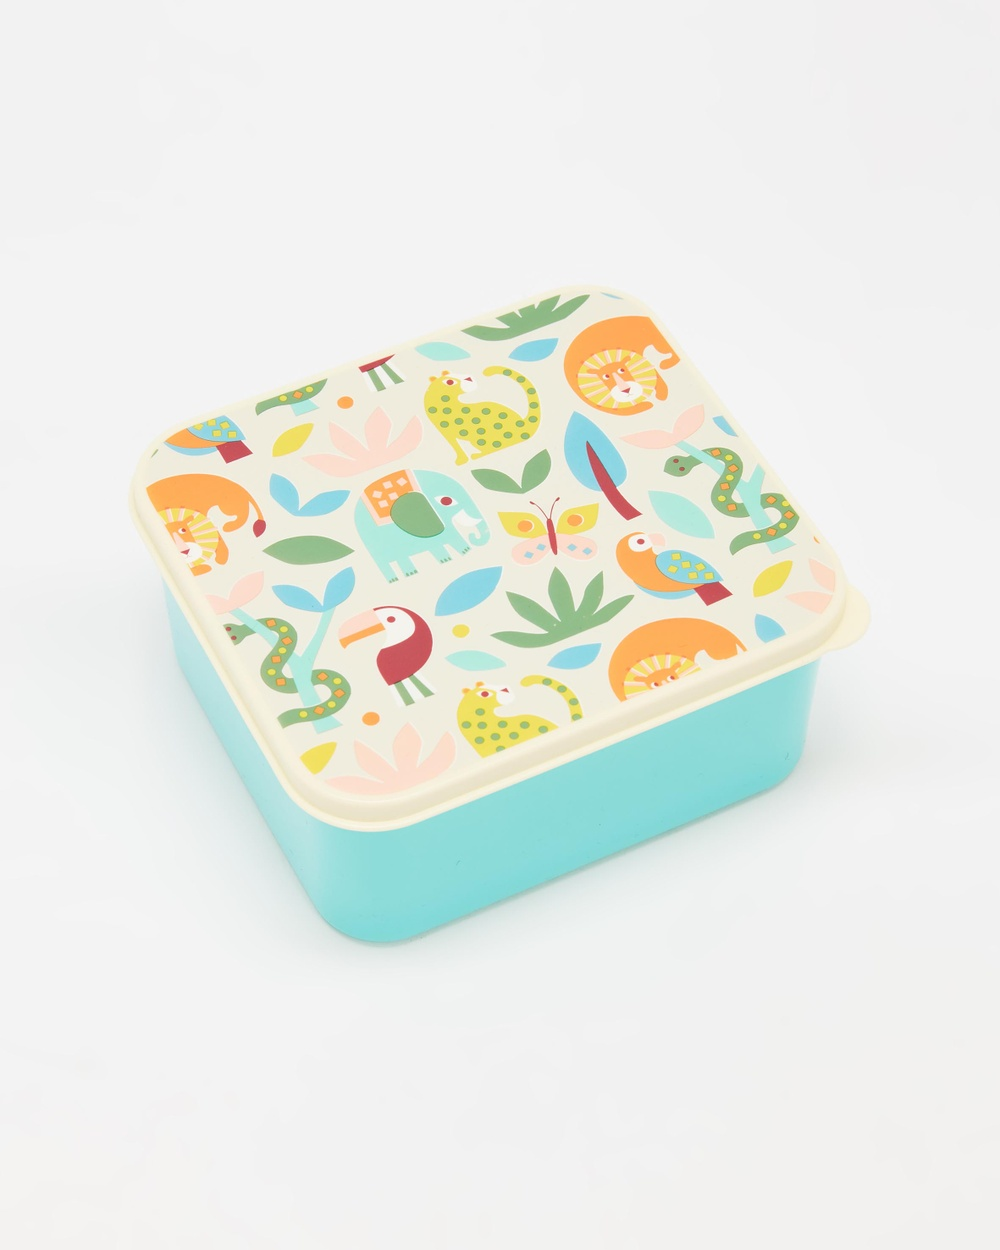 REX Lunch Box Lunchboxes Wild Wonders